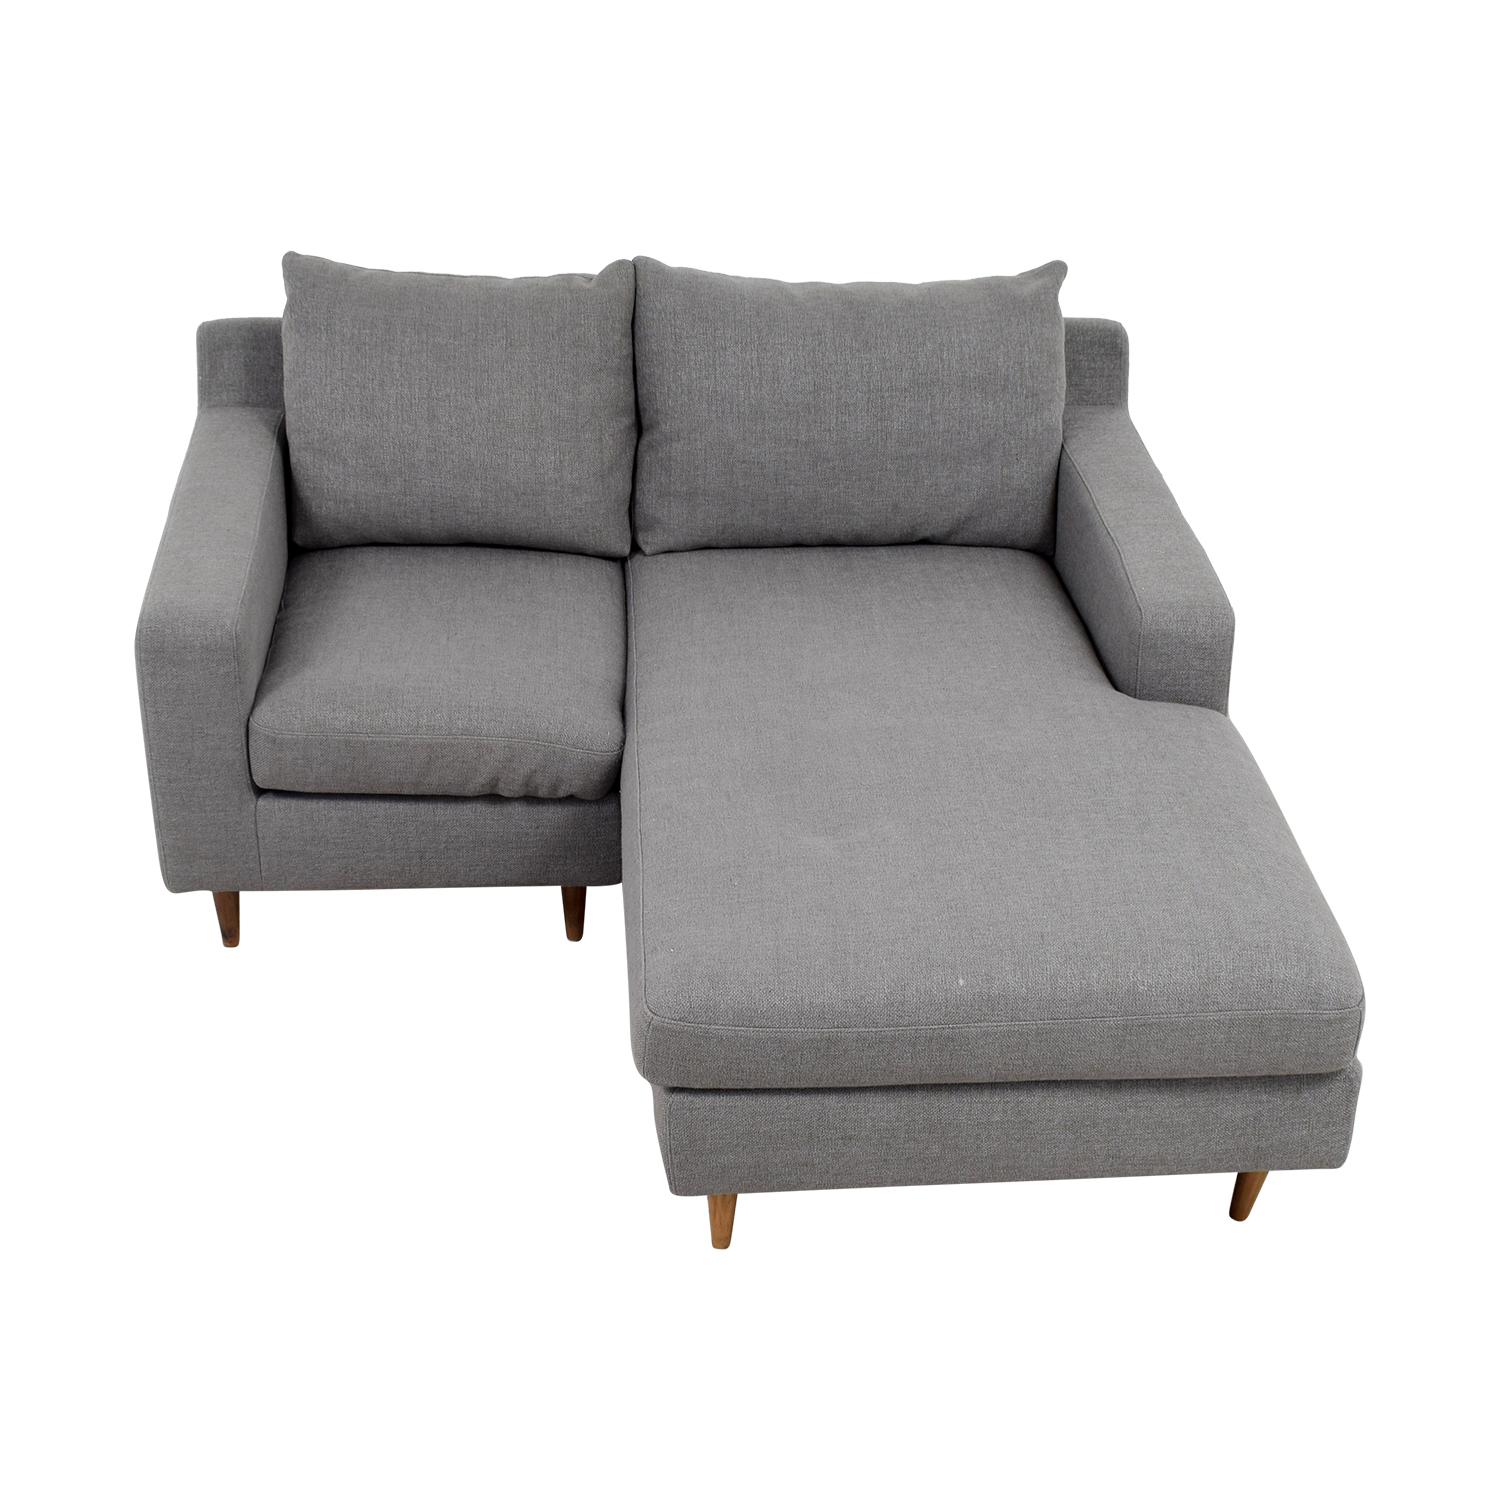 80 off interior define interior define custom grey loveseat with chaise sofas Loveseat chaise sectional